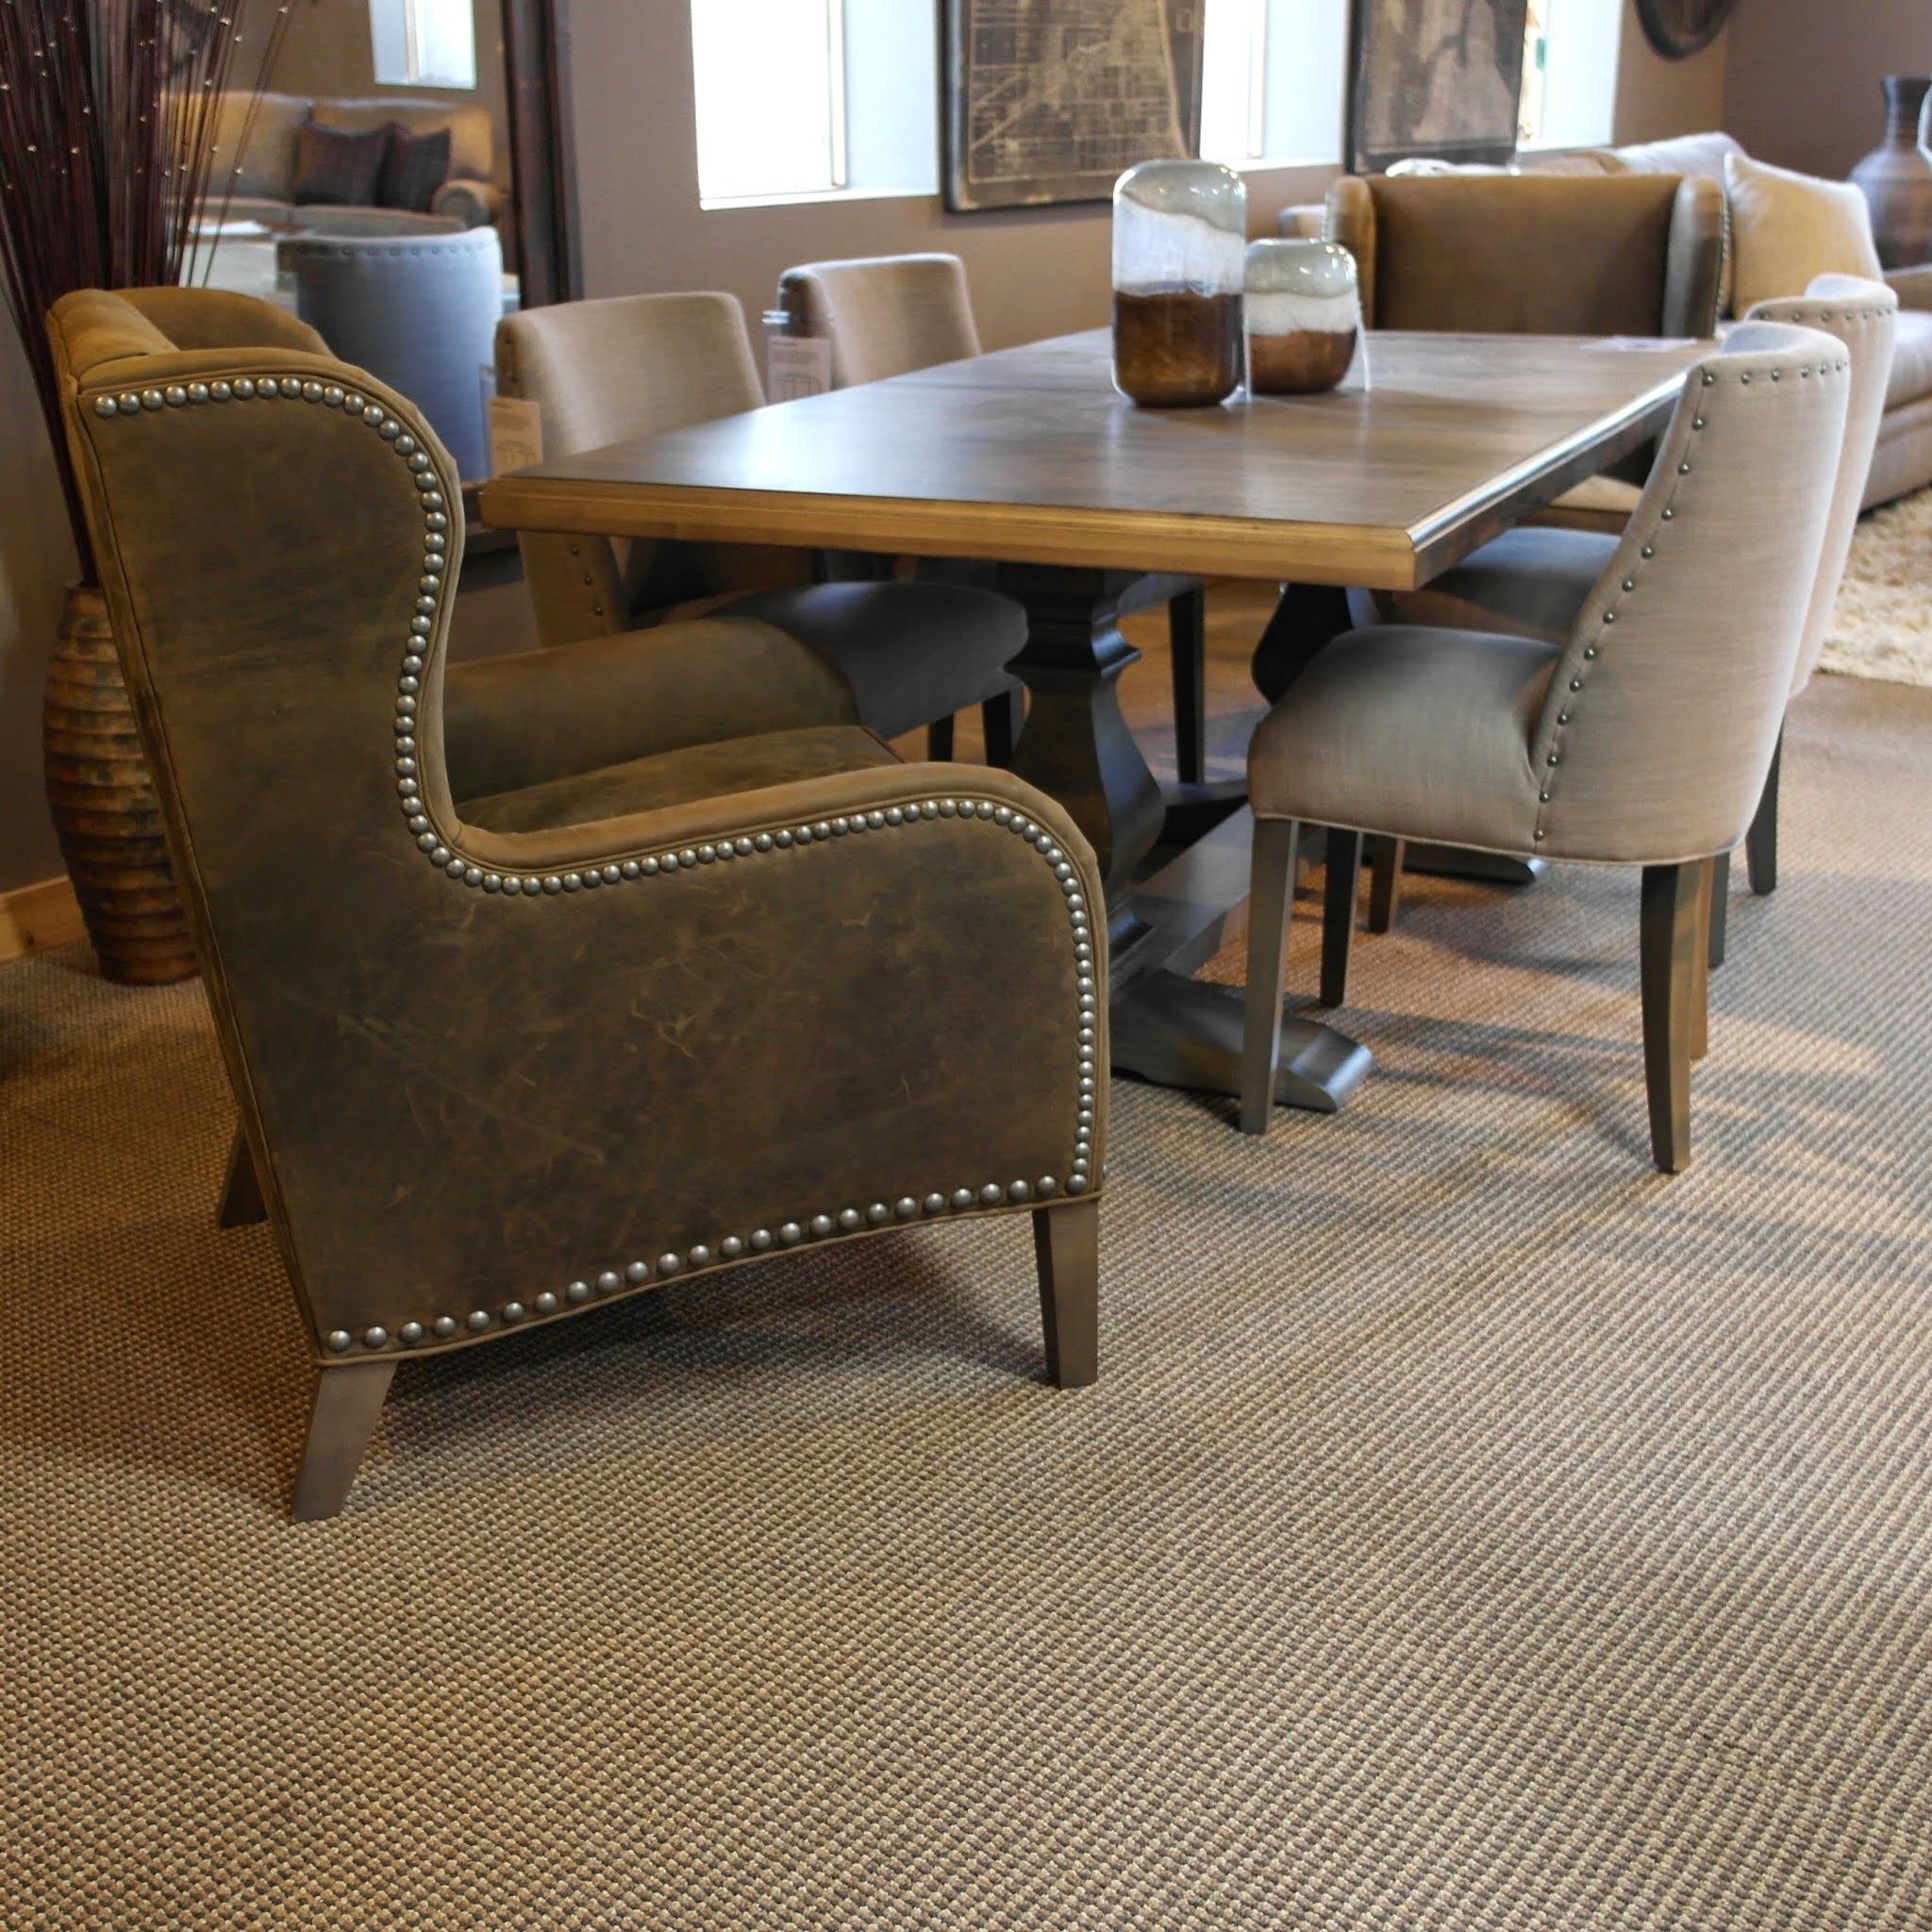 New Castle Dining Table With Taylor Arm Chairs Furniture Interiordesign Desmoines Homedecor Beautiful Style Home Photooftheday